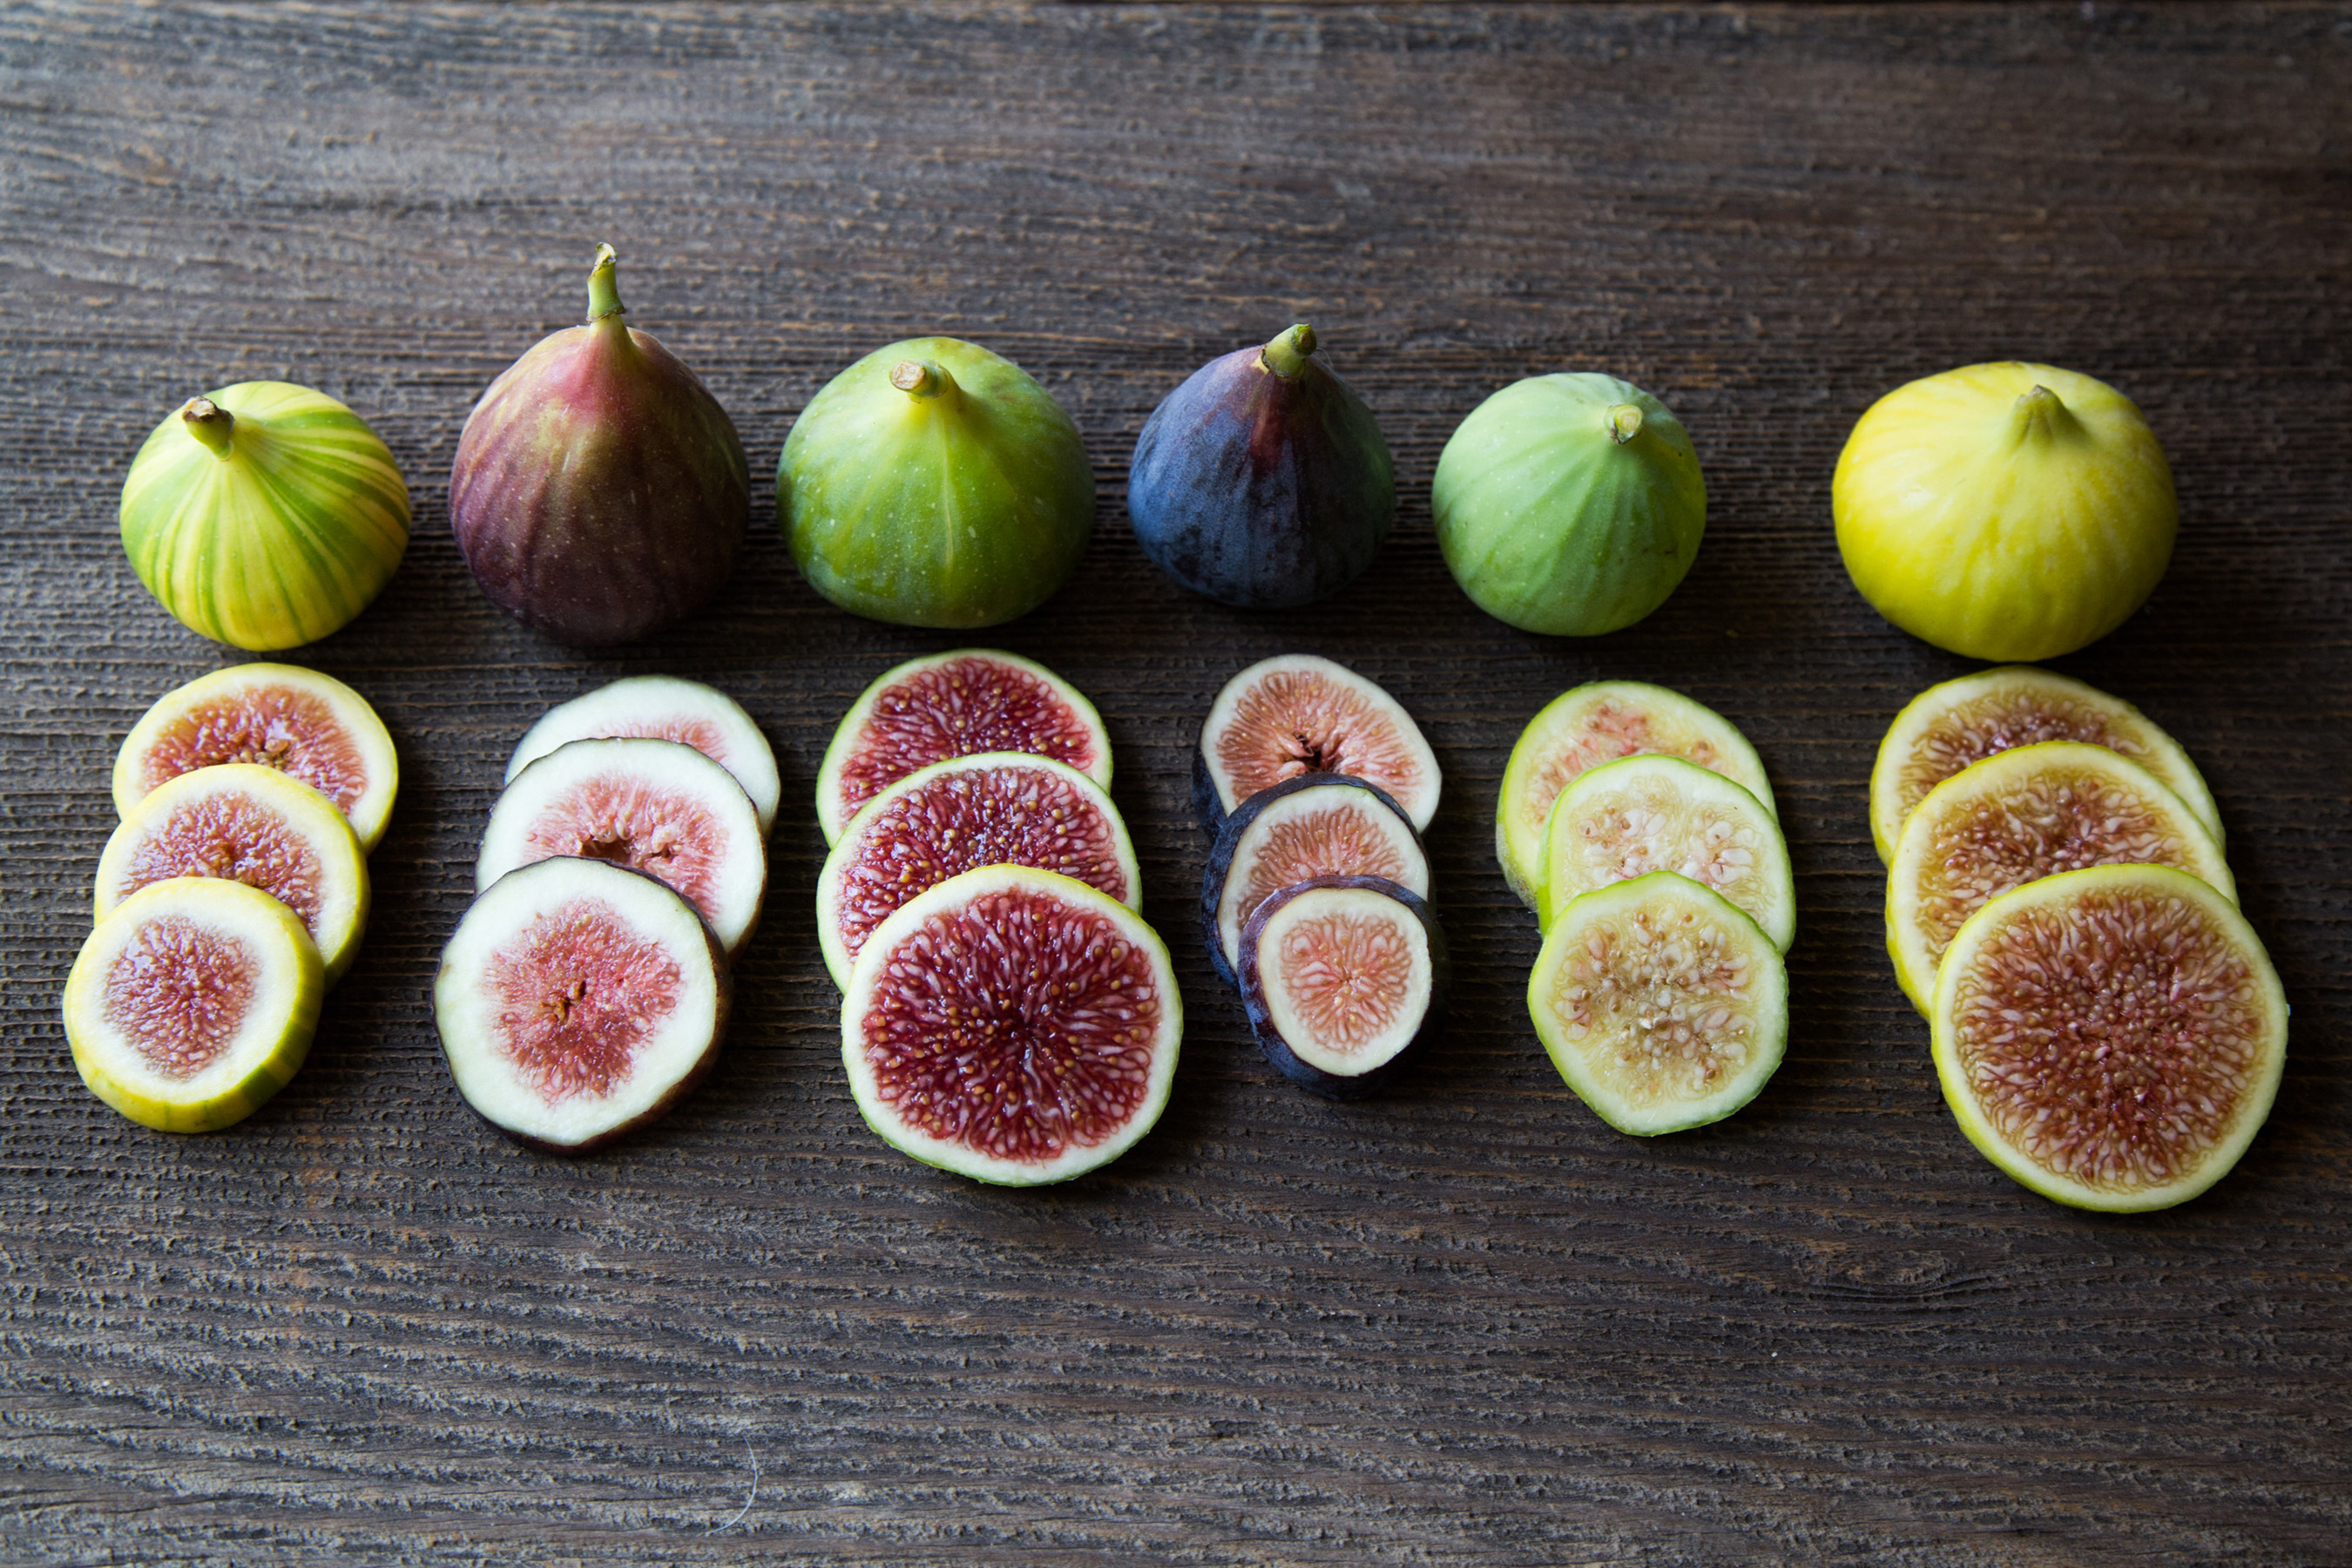 California Fresh Figs Available Now2700 x 1800 jpeg 1555kB